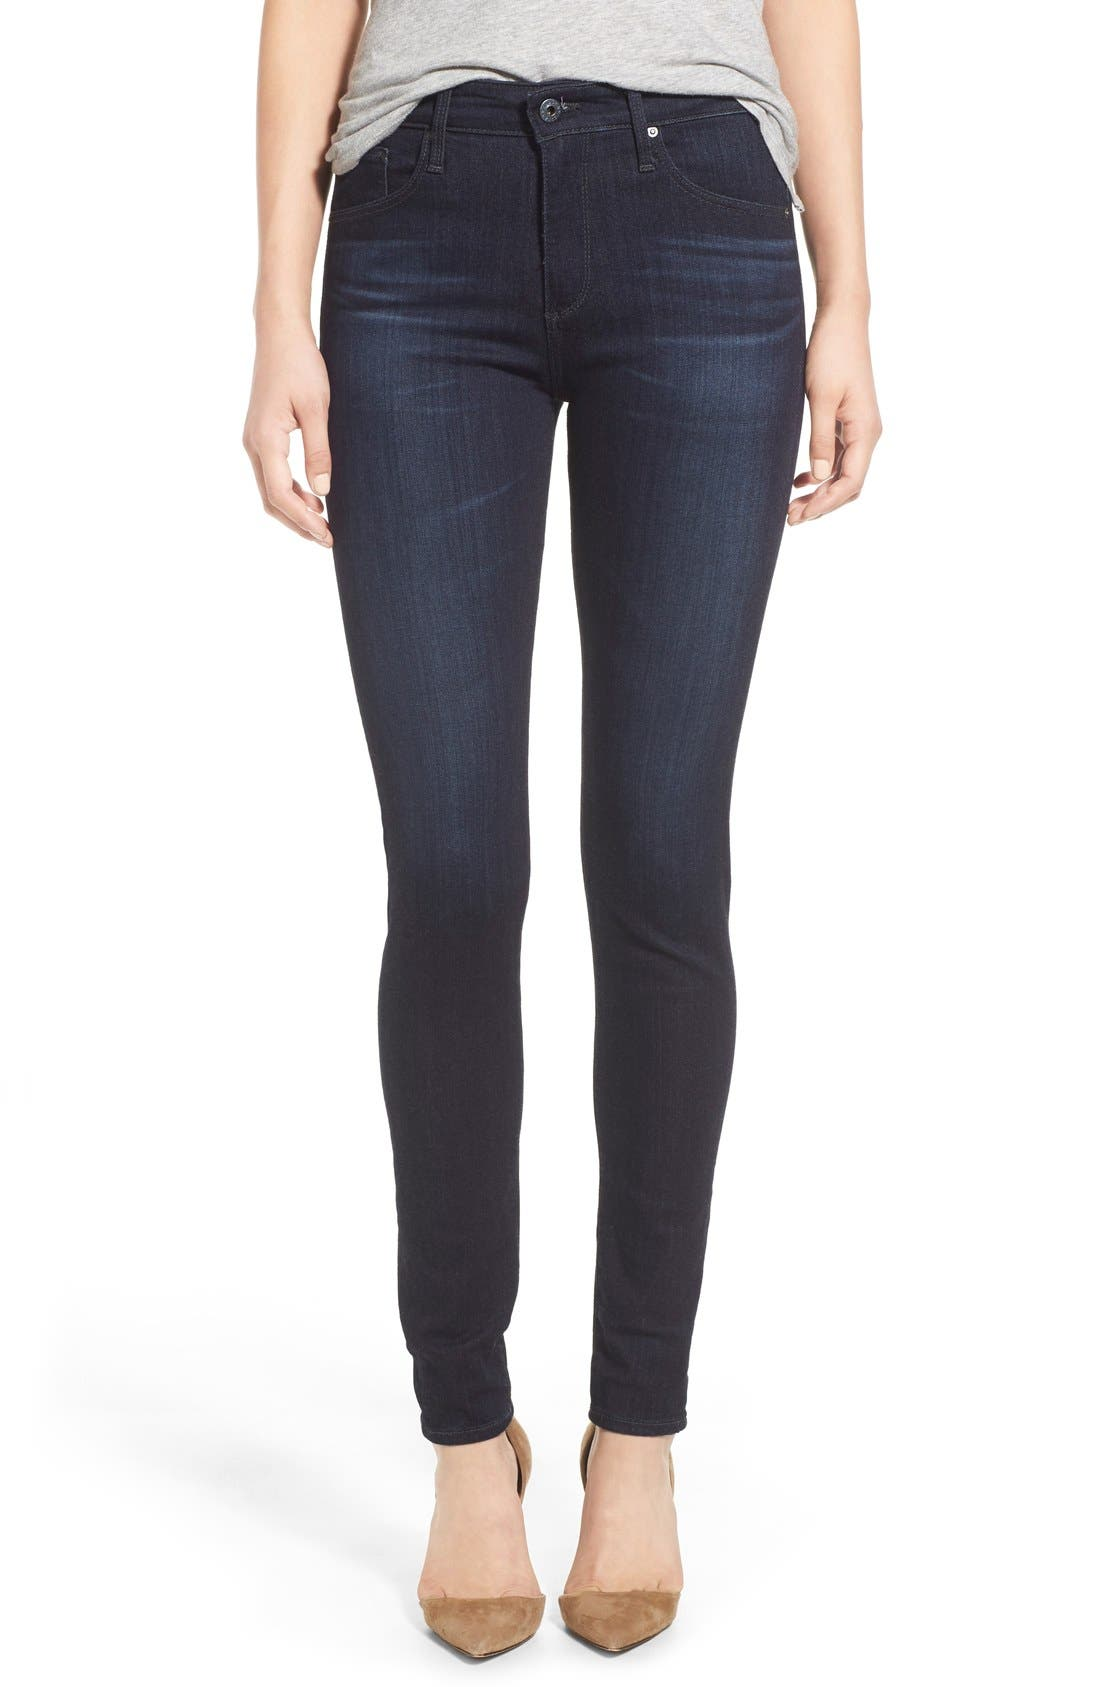 Women's high rise grey skinny jeans